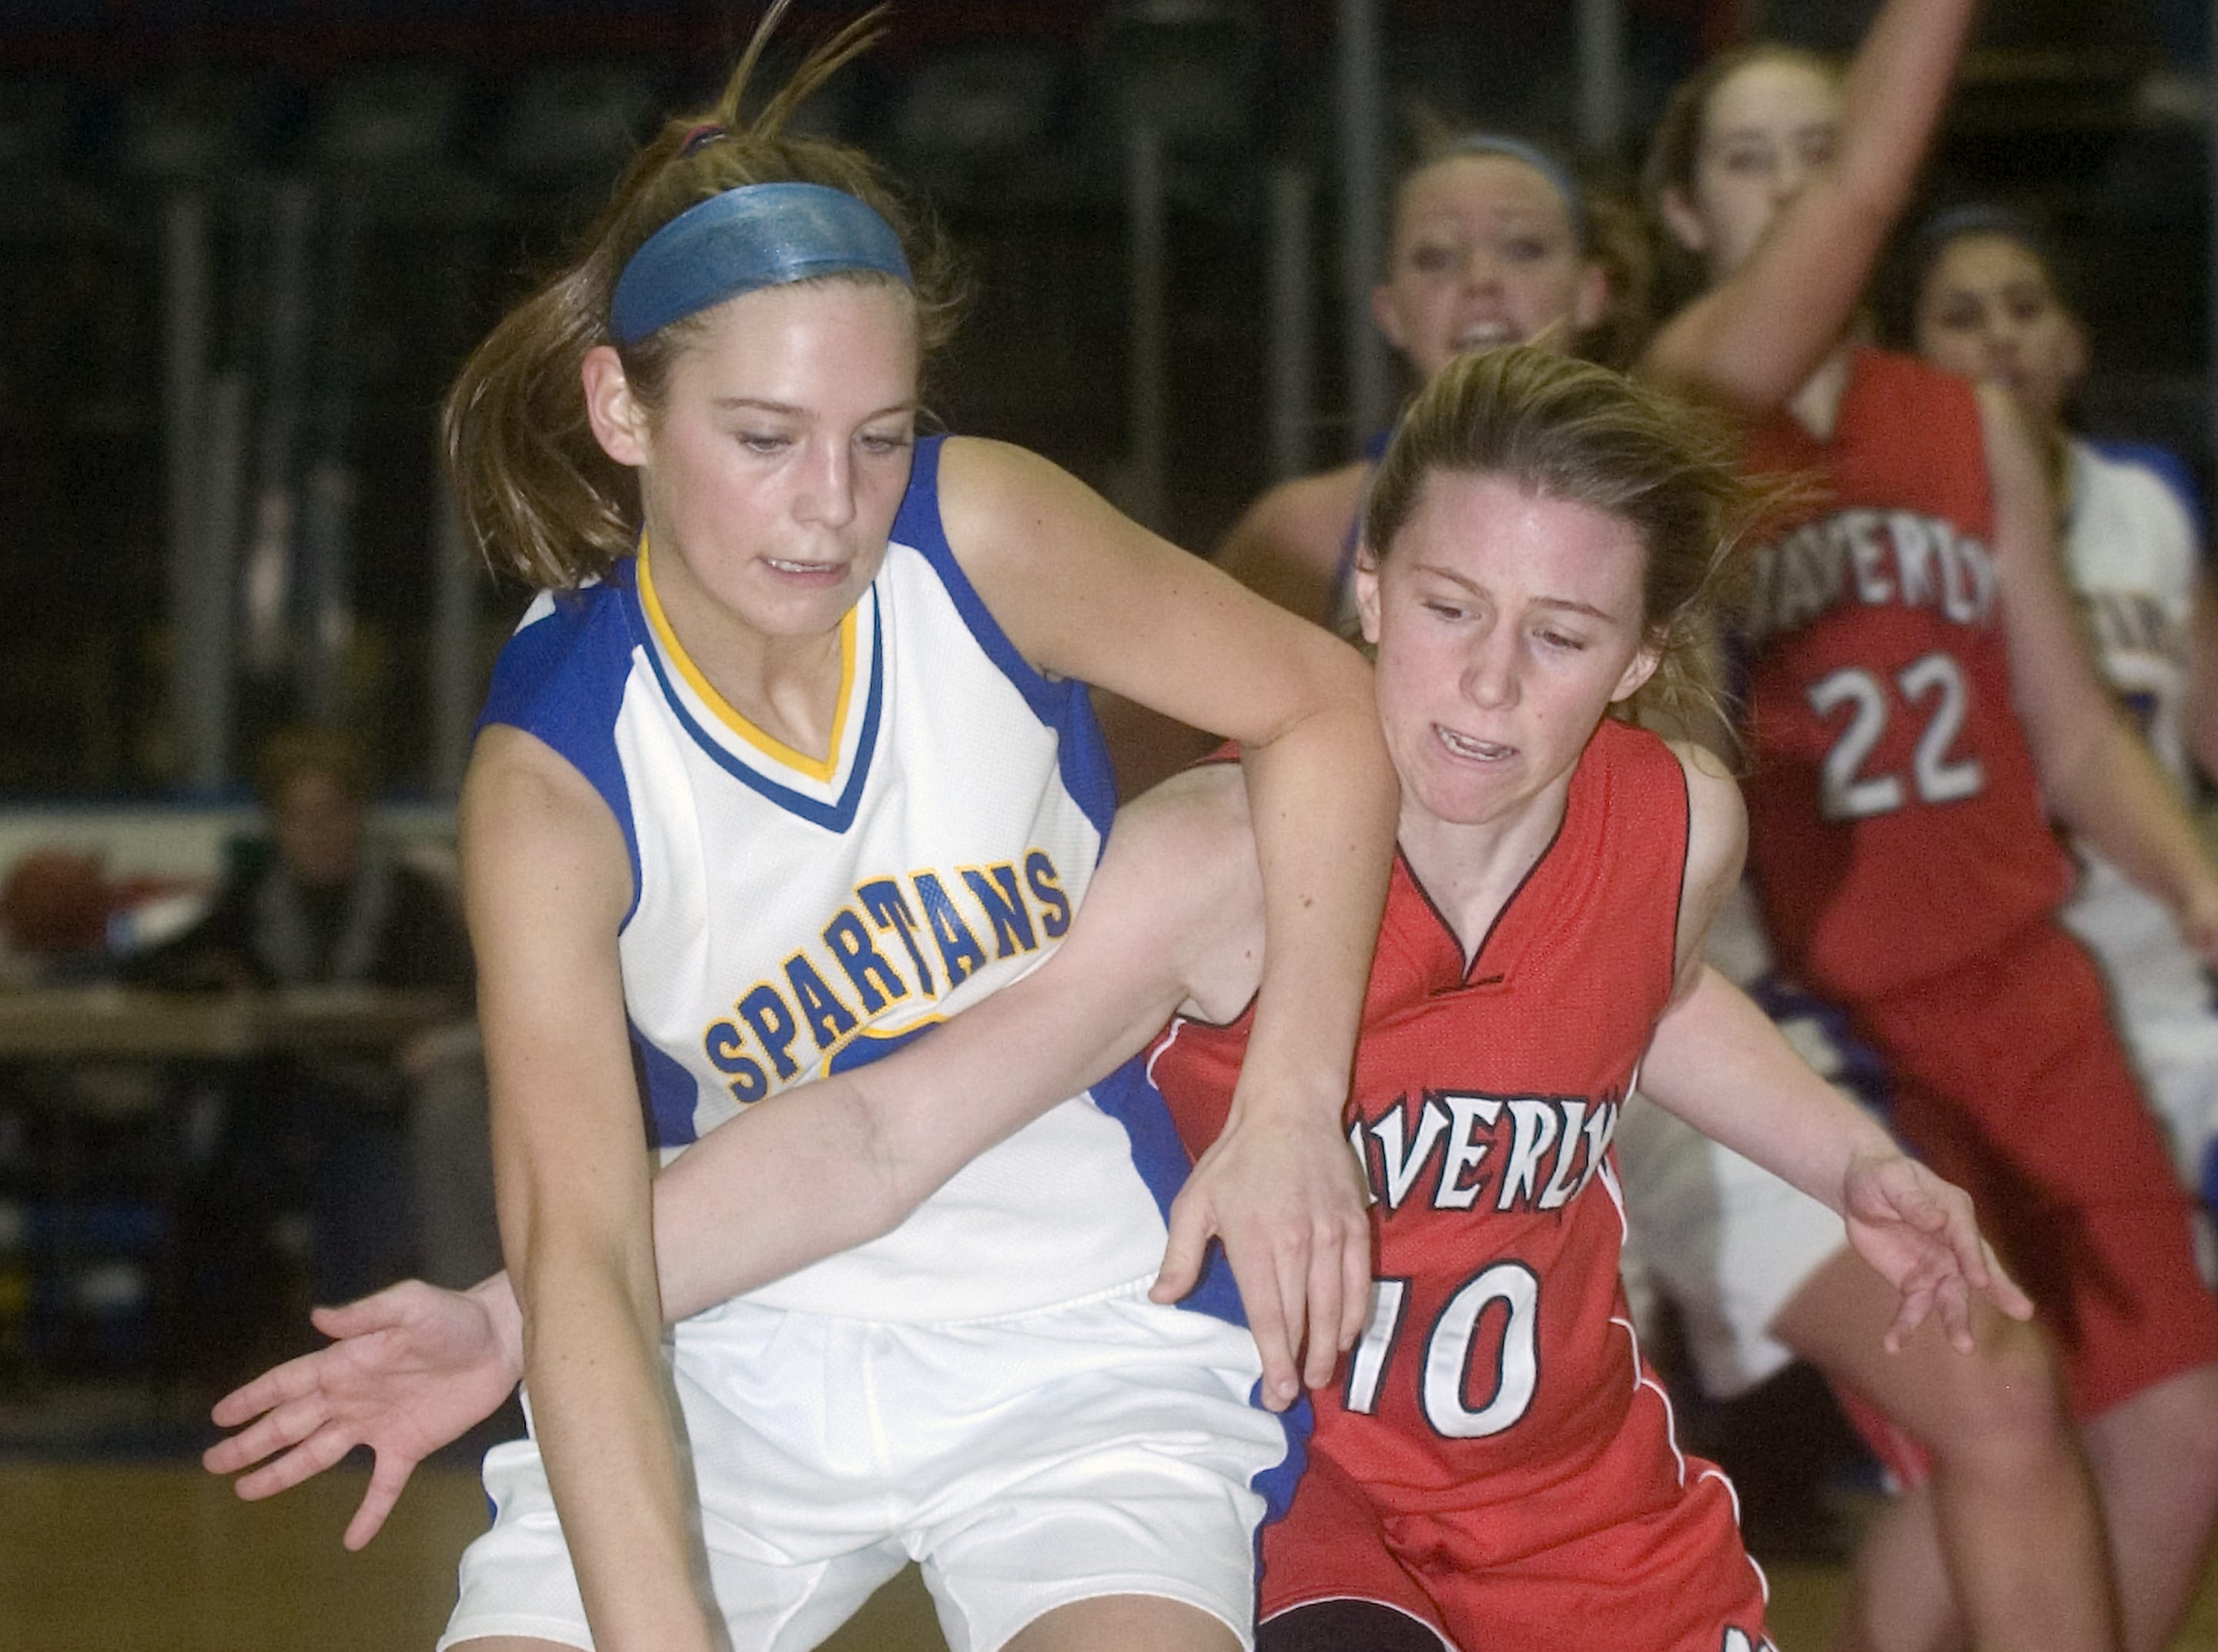 2009: Maine-Endwell's Laura Mastro, left, is fouled by Waverly's Lindsey Leary on defense in the third quarter of Thursday's Section 4 Class A girls basketball finals at Broome County Veterans Memorial Arena.